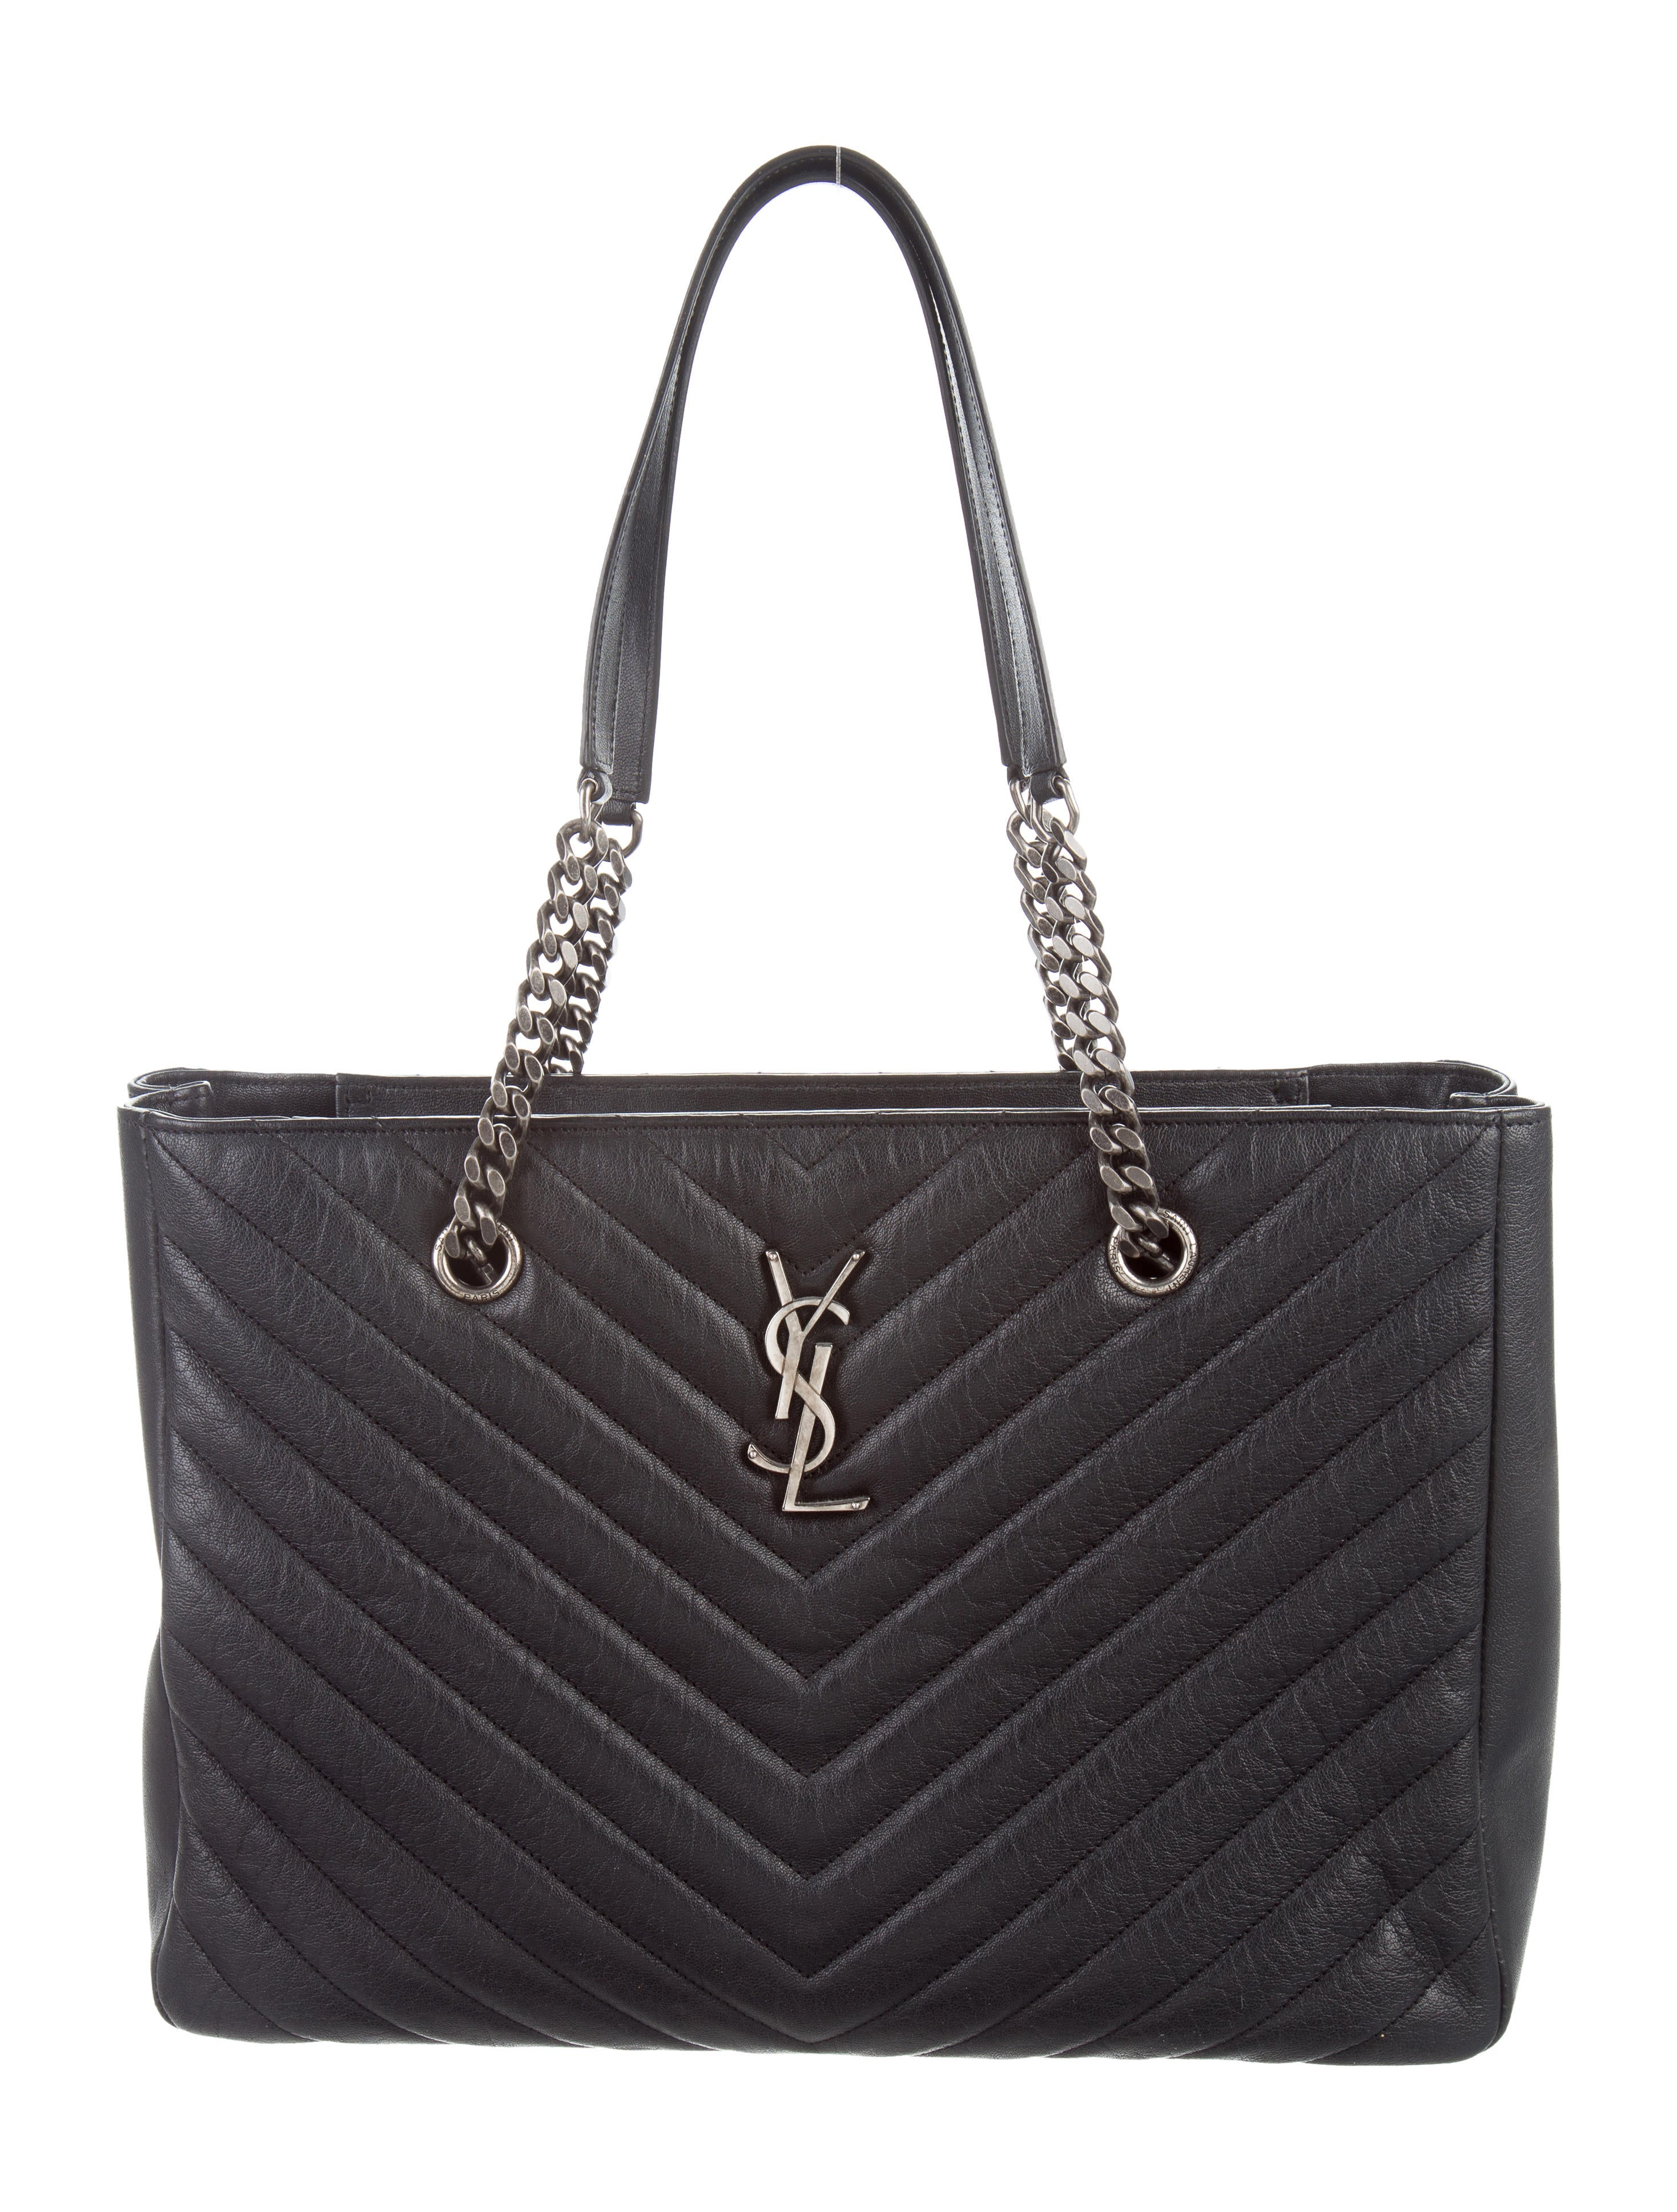 Saint Laurent 2015 Chevron Quilted Monogram Bag Handbags  : SNT385641enlarged from www.therealreal.com size 2937 x 3874 jpeg 999kB